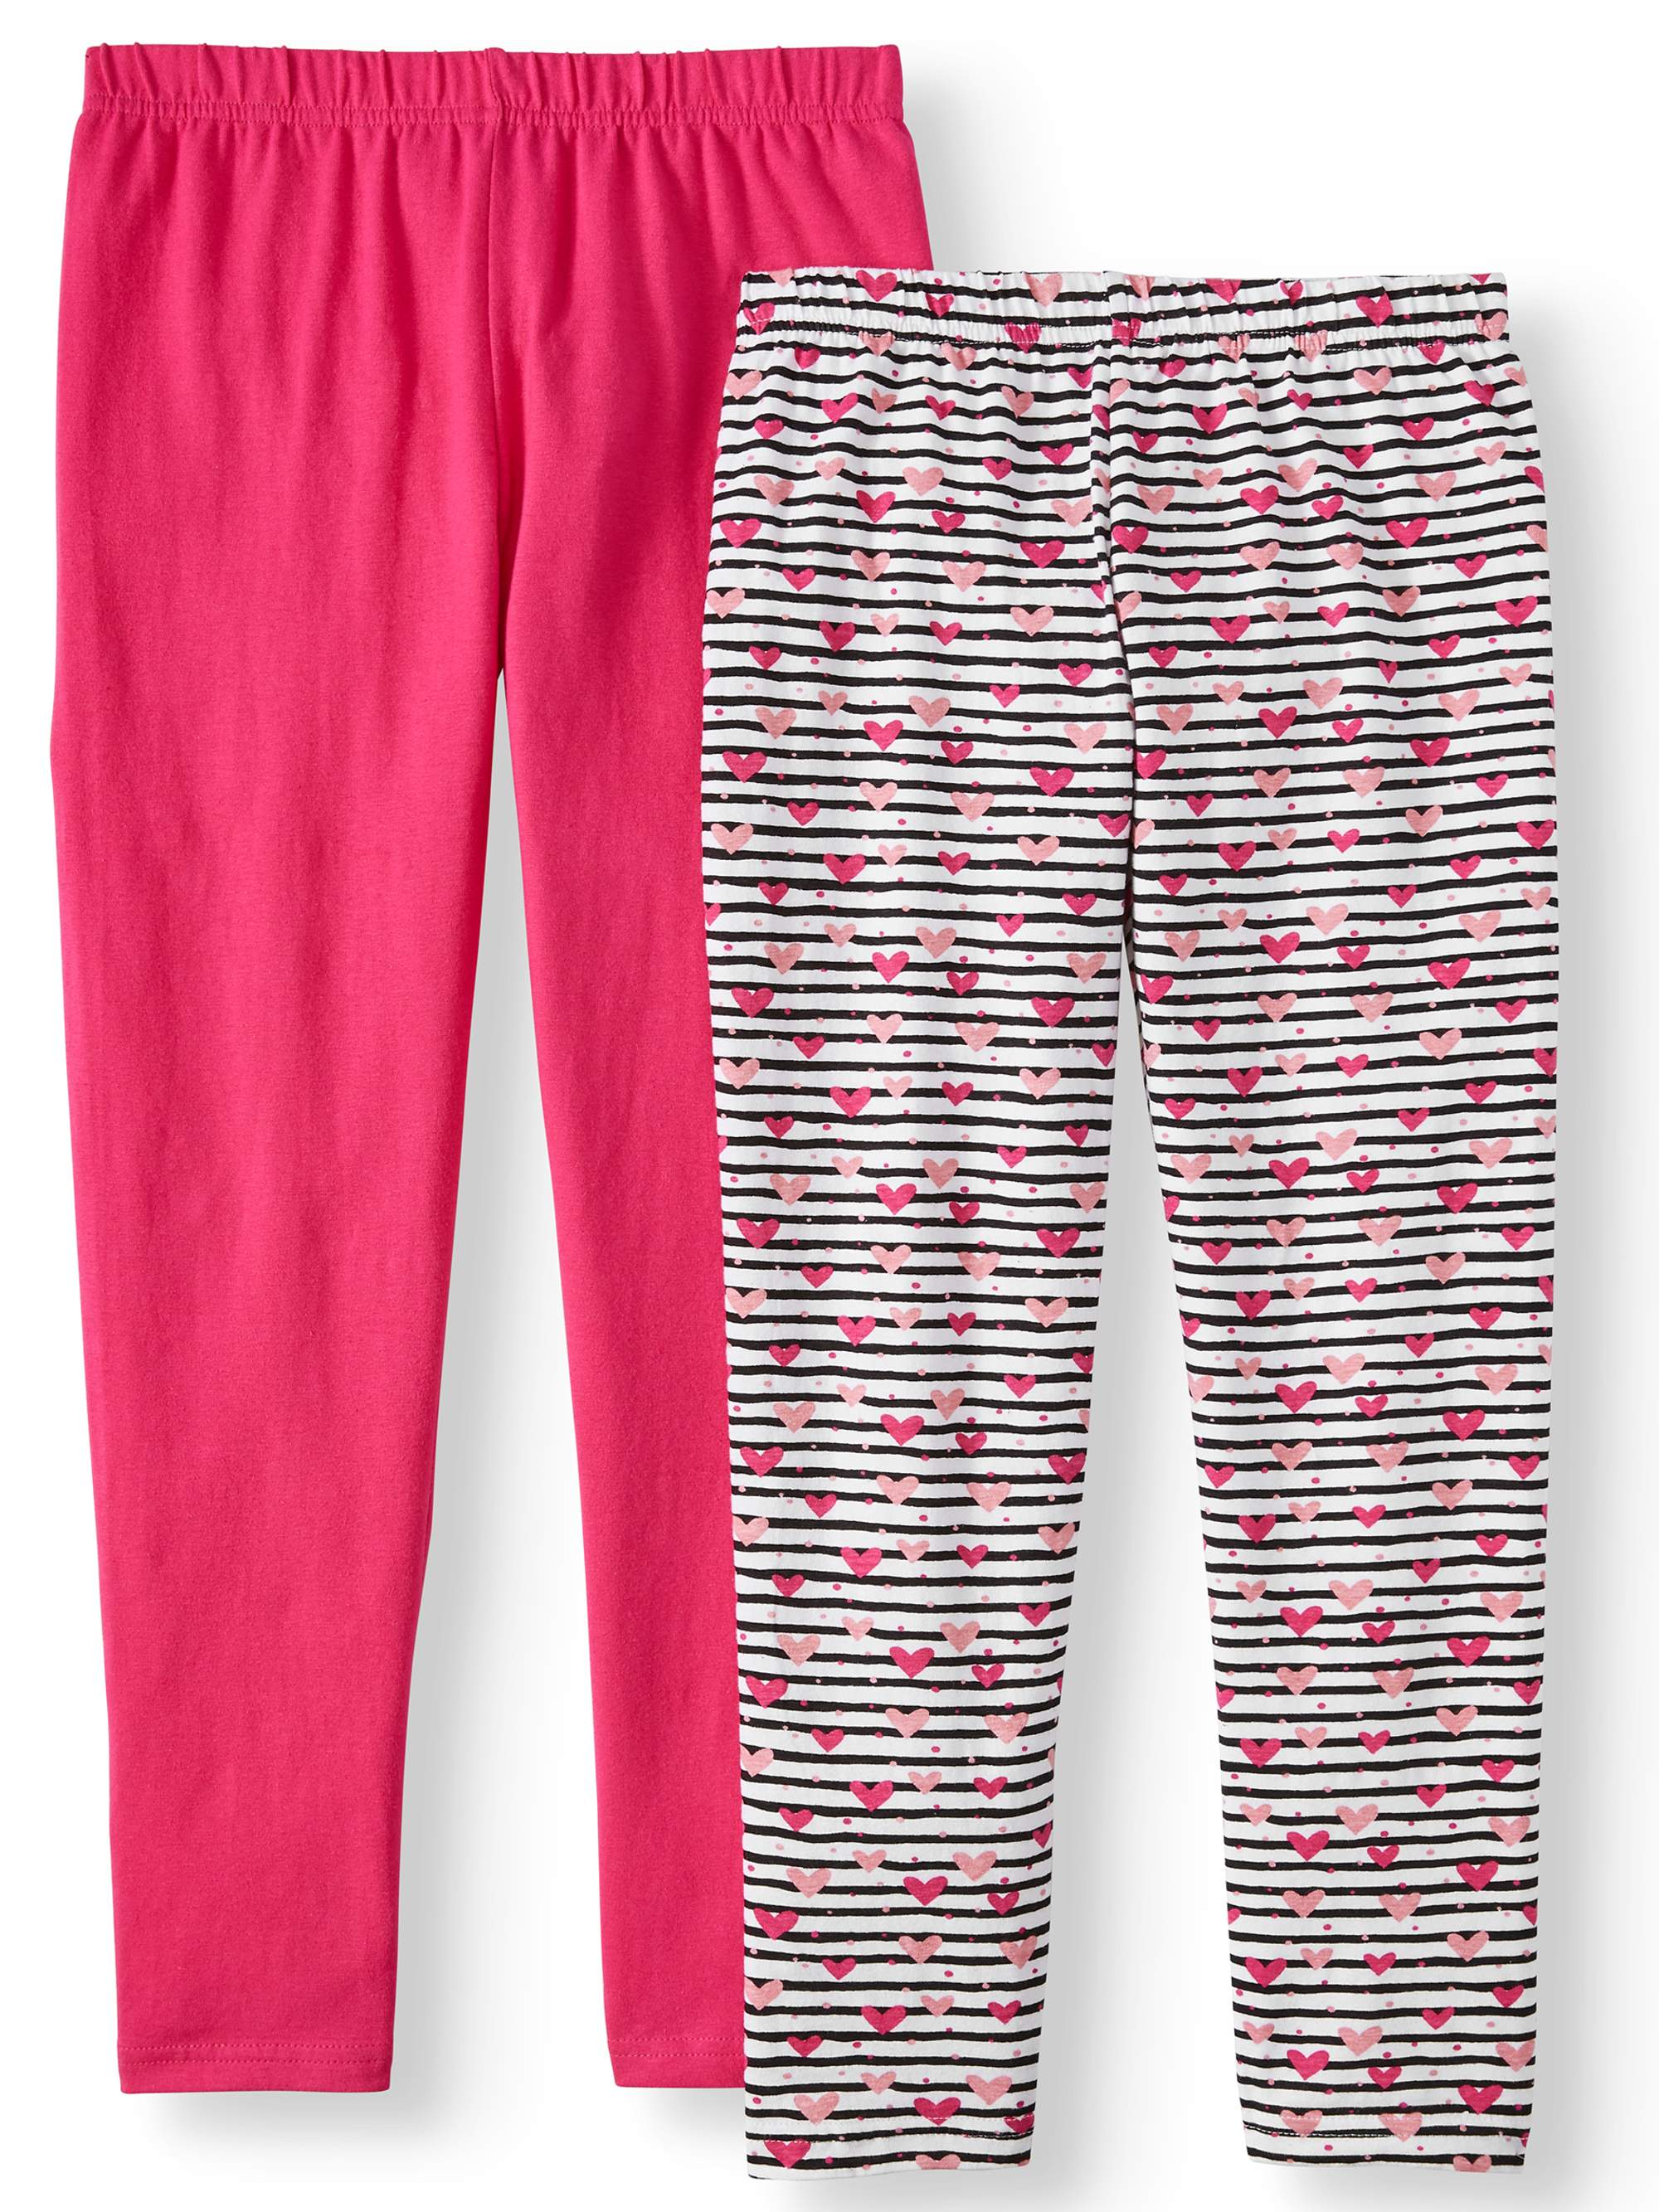 Printed and Solid Leggings, 2-Pack (Little Girls & Big Girls)